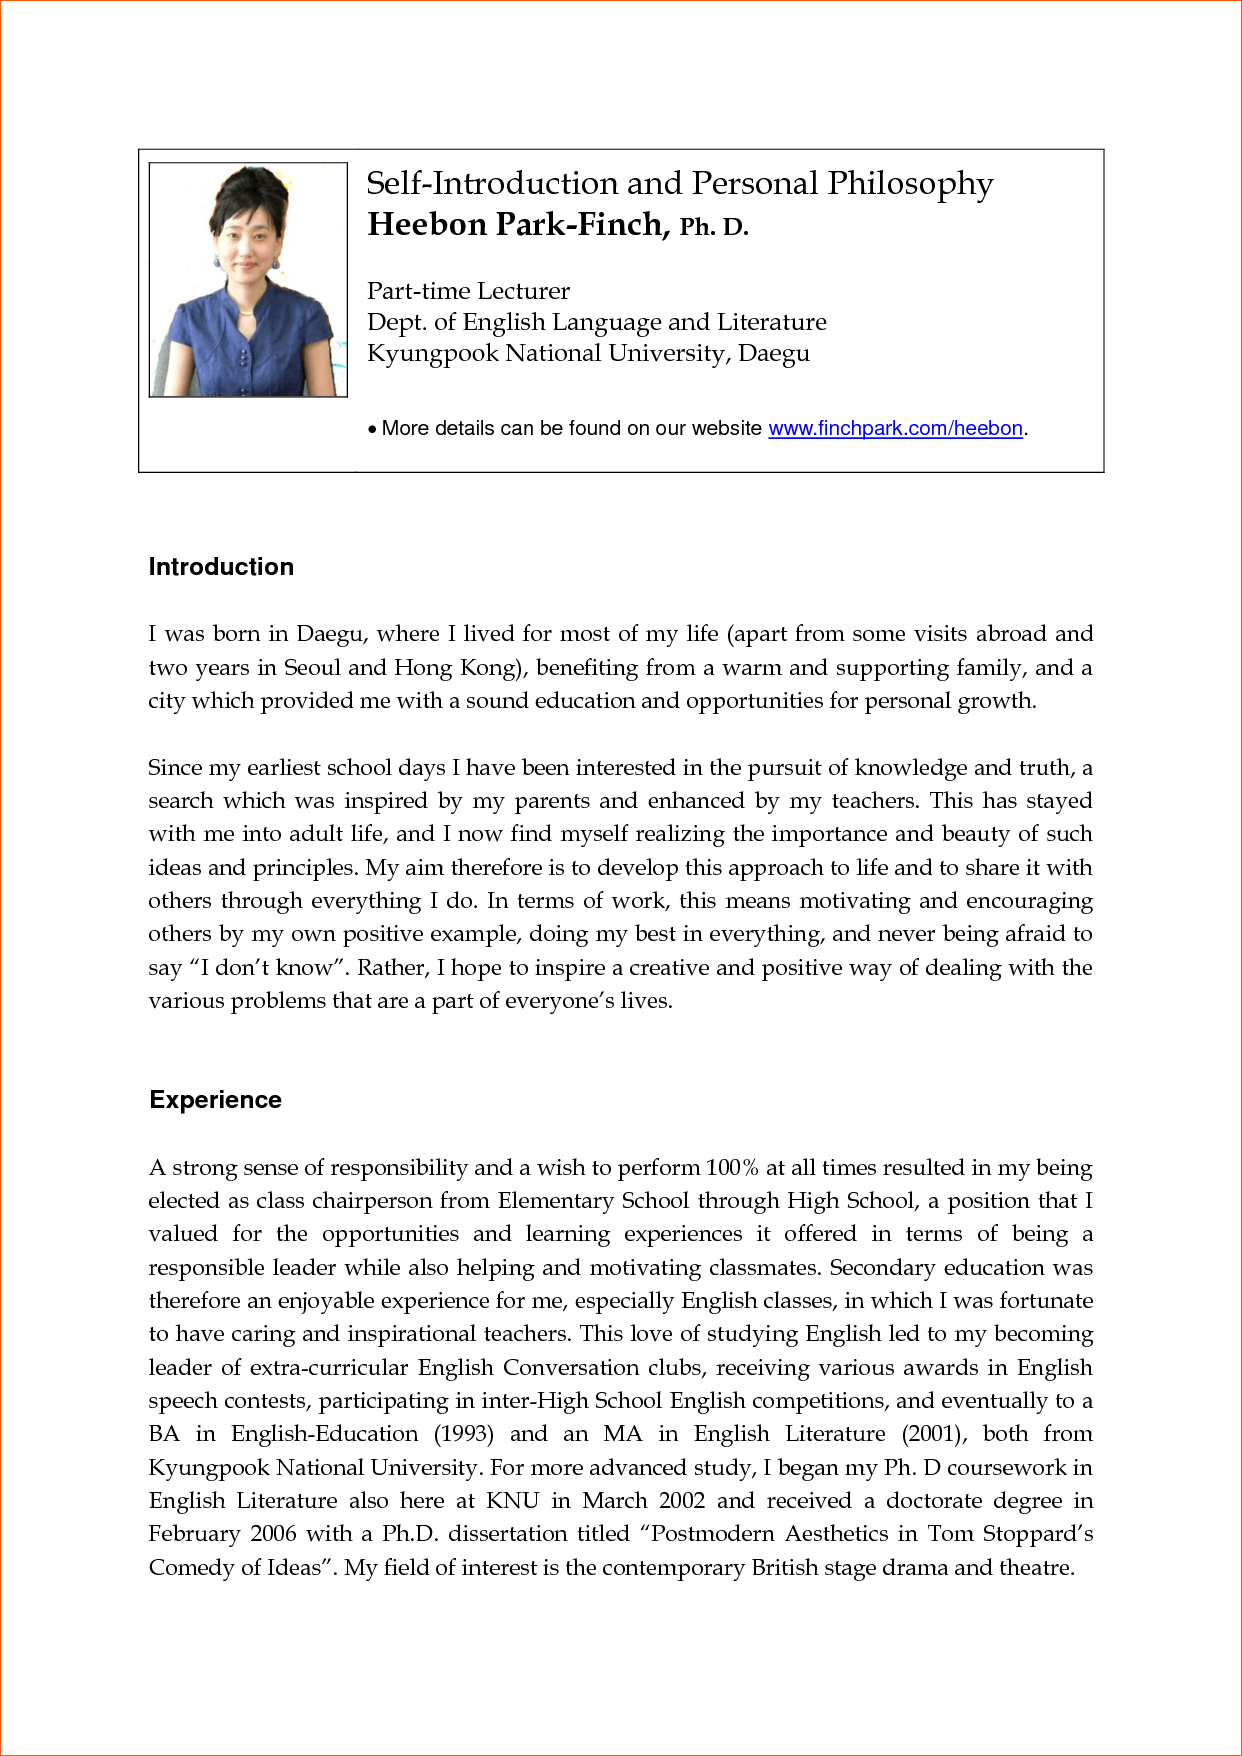 Sample Essay About Myself For Job